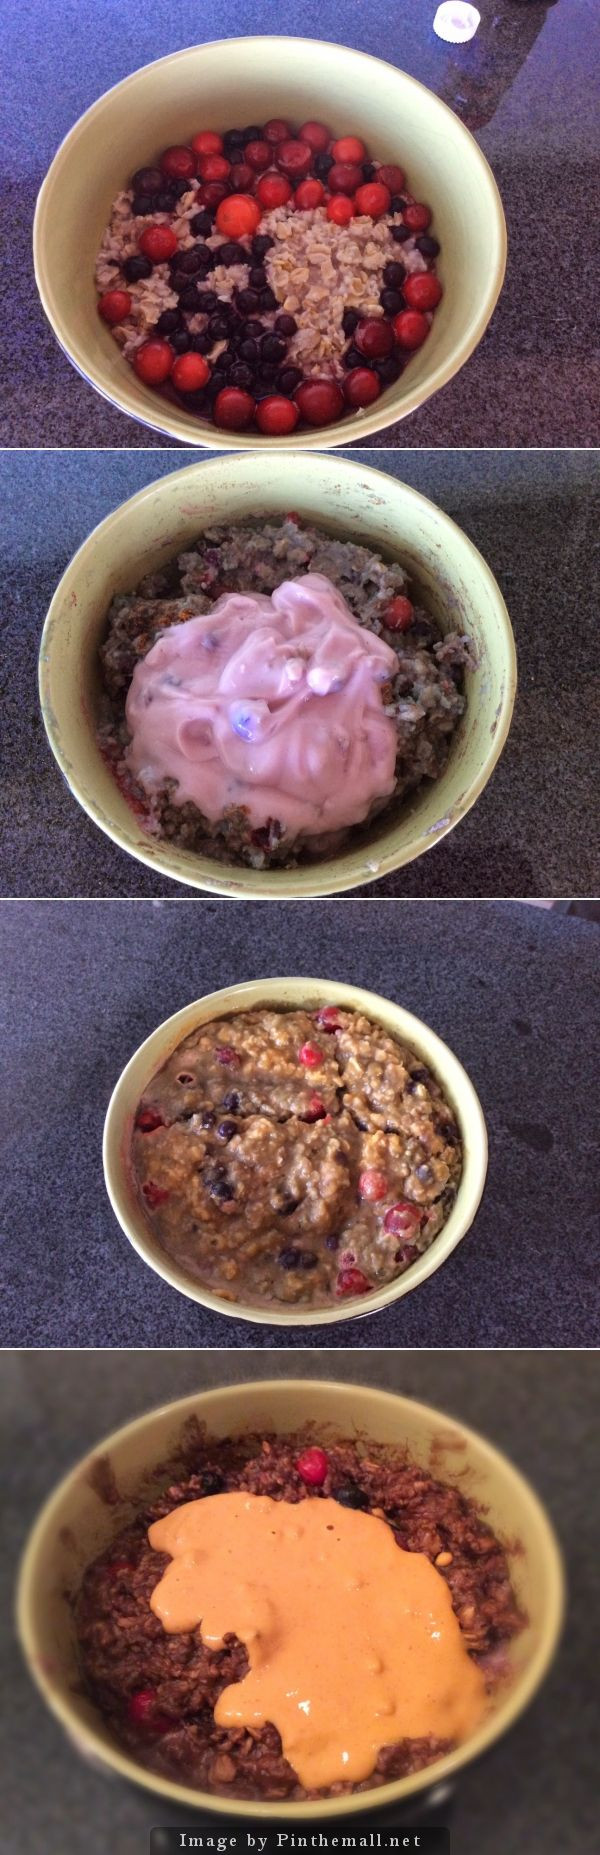 Low Calorie Oatmeal Recipes  Egg white oatmeal High in protein low calorie 300 and